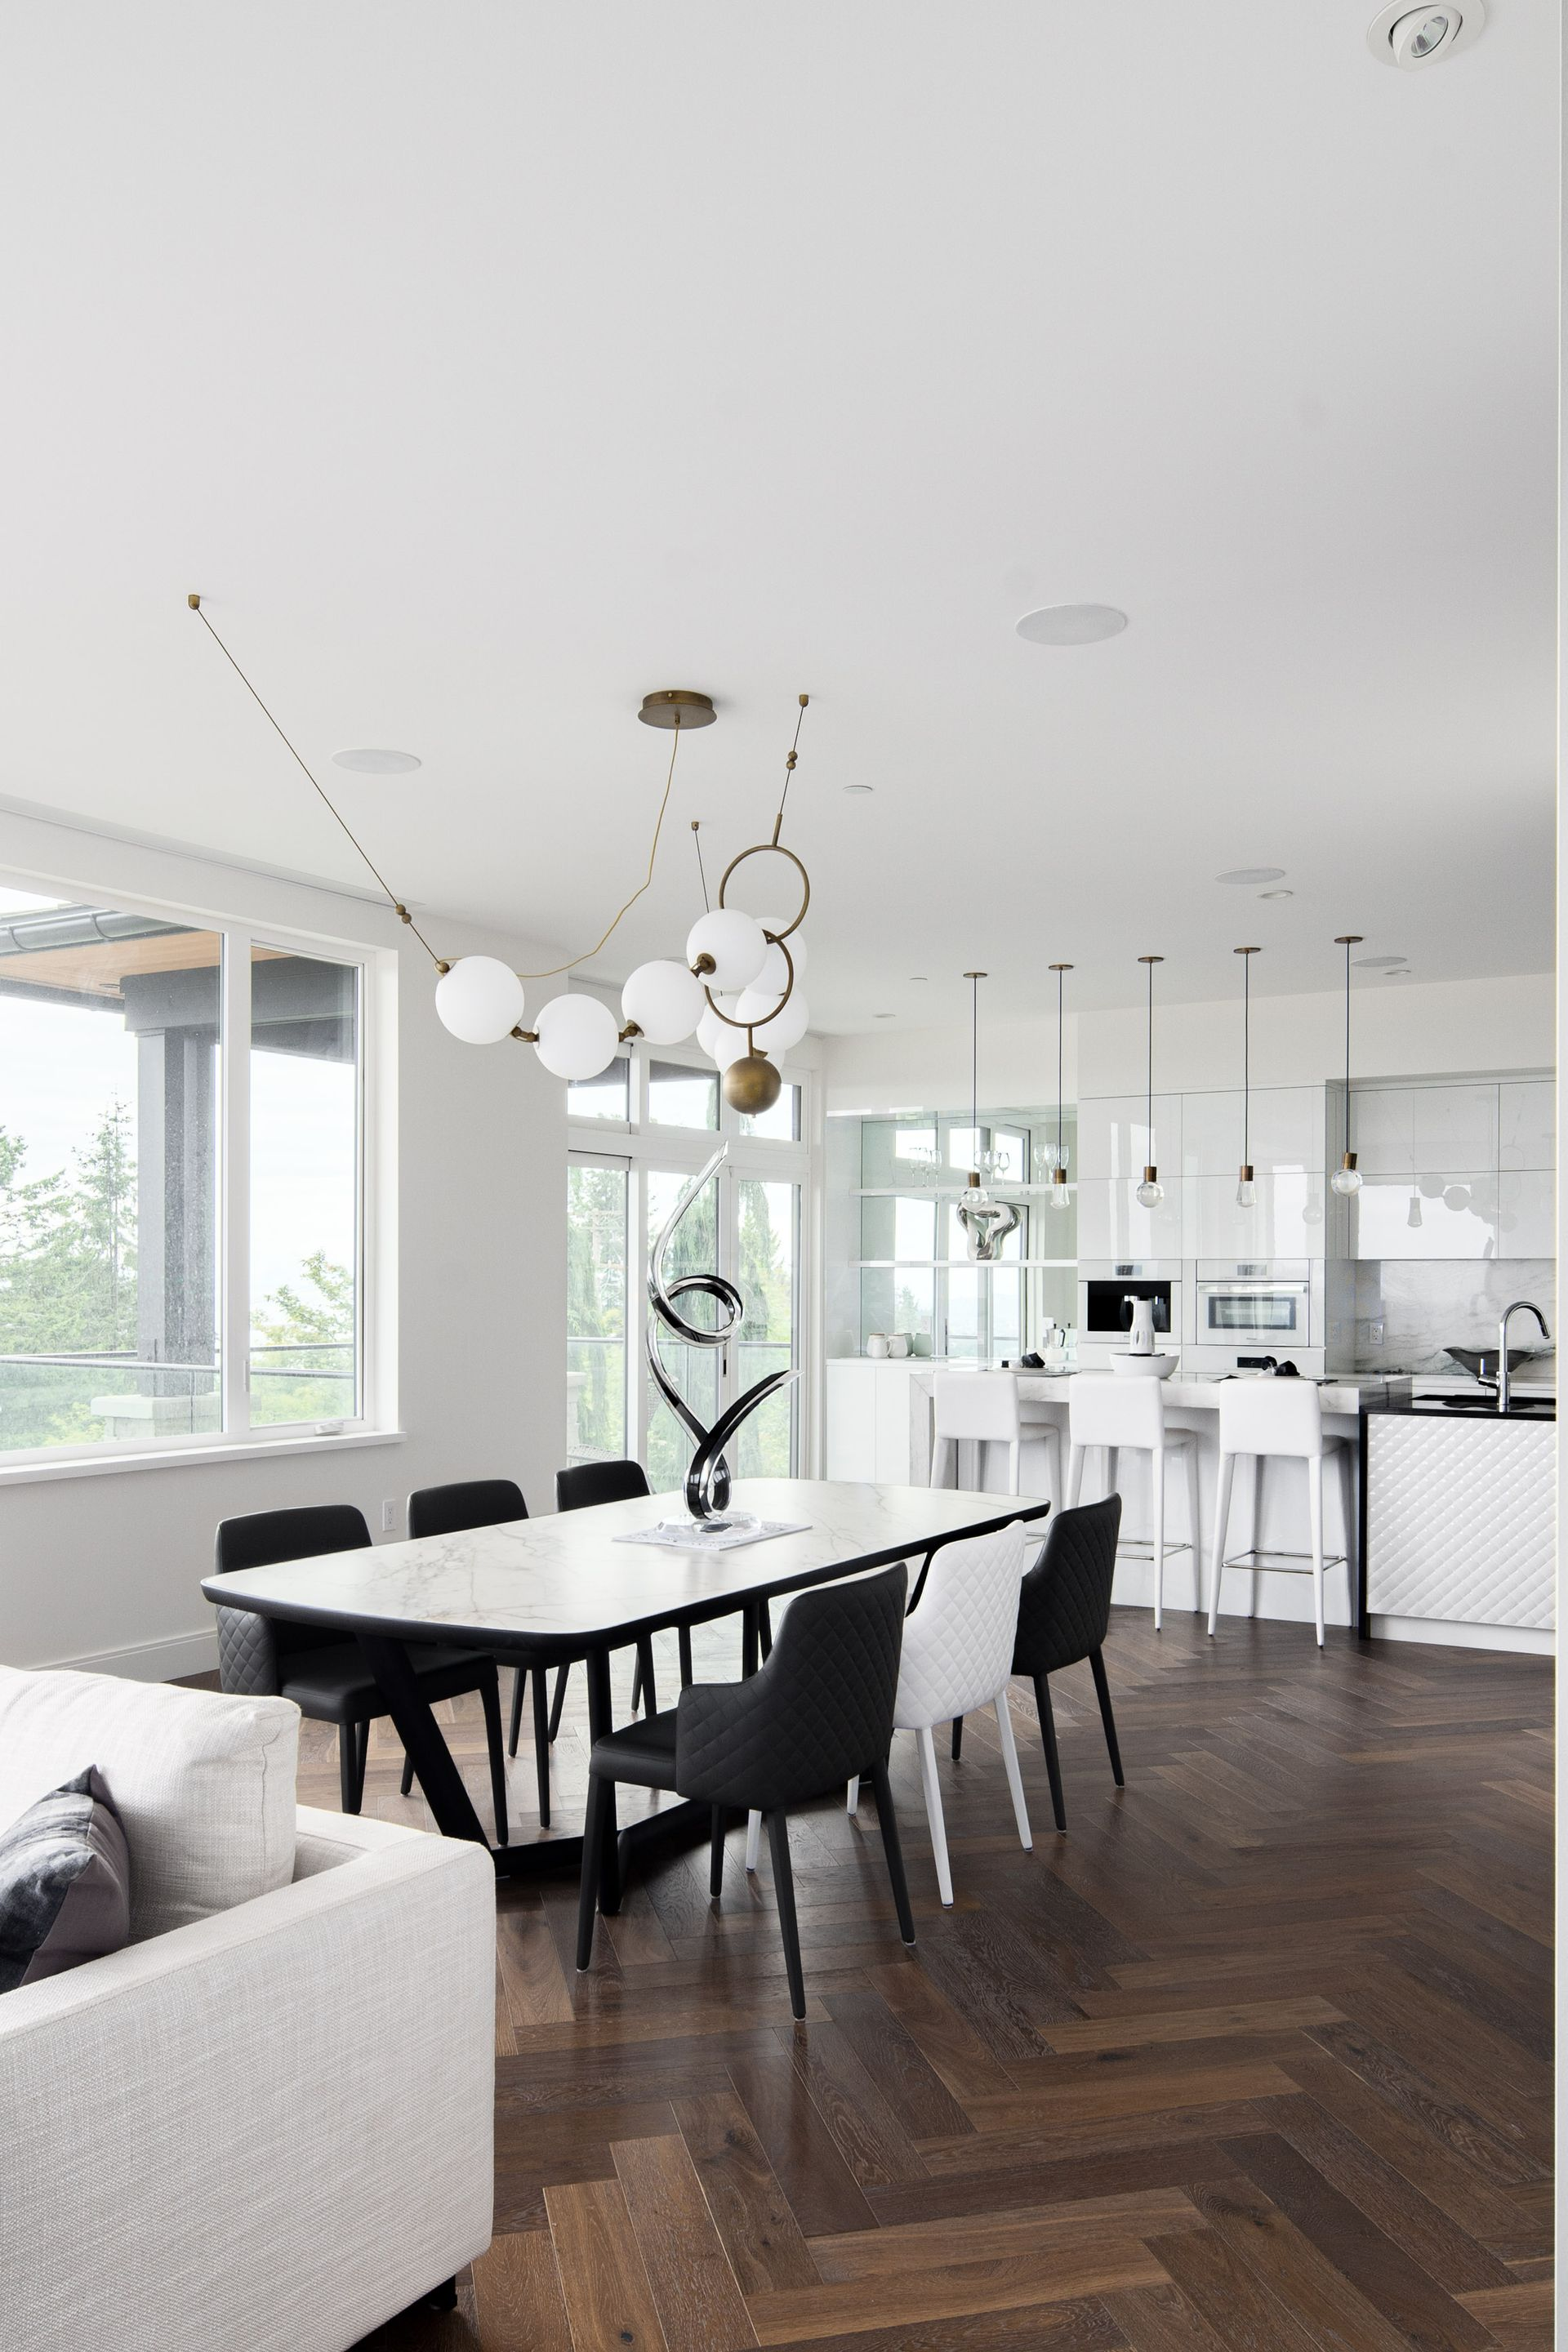 union-crt-2121-west-vancouver-tandy-gao-staging-7 at 2121 Union Court, Panorama Village, West Vancouver